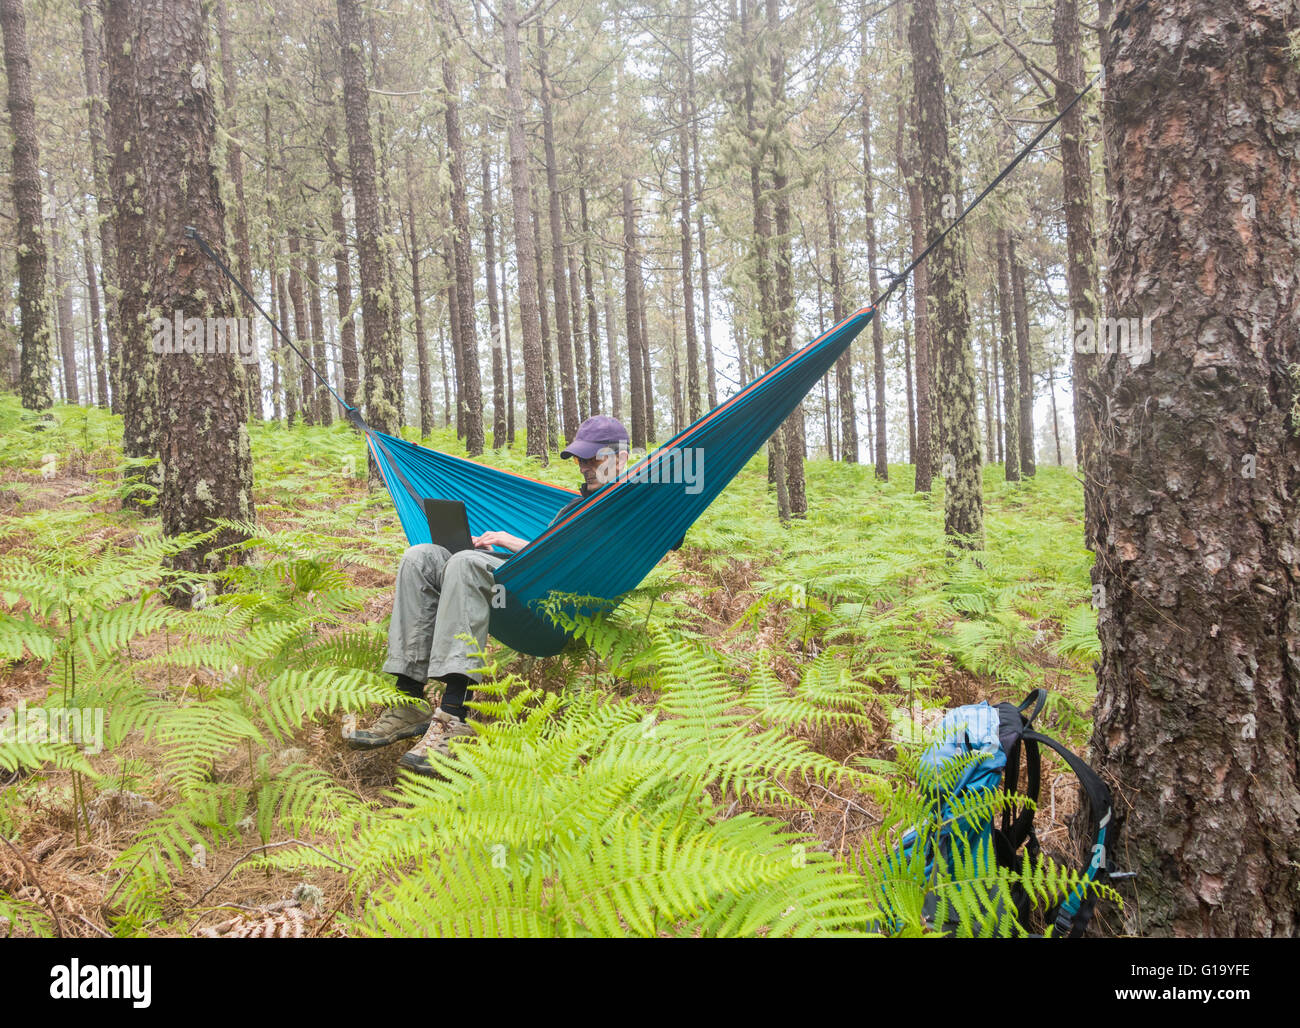 Mature male hiker using laptop in hammock in forest. Possible uses: Travel/retirement/adventure/ digital nomad/... - Stock Image